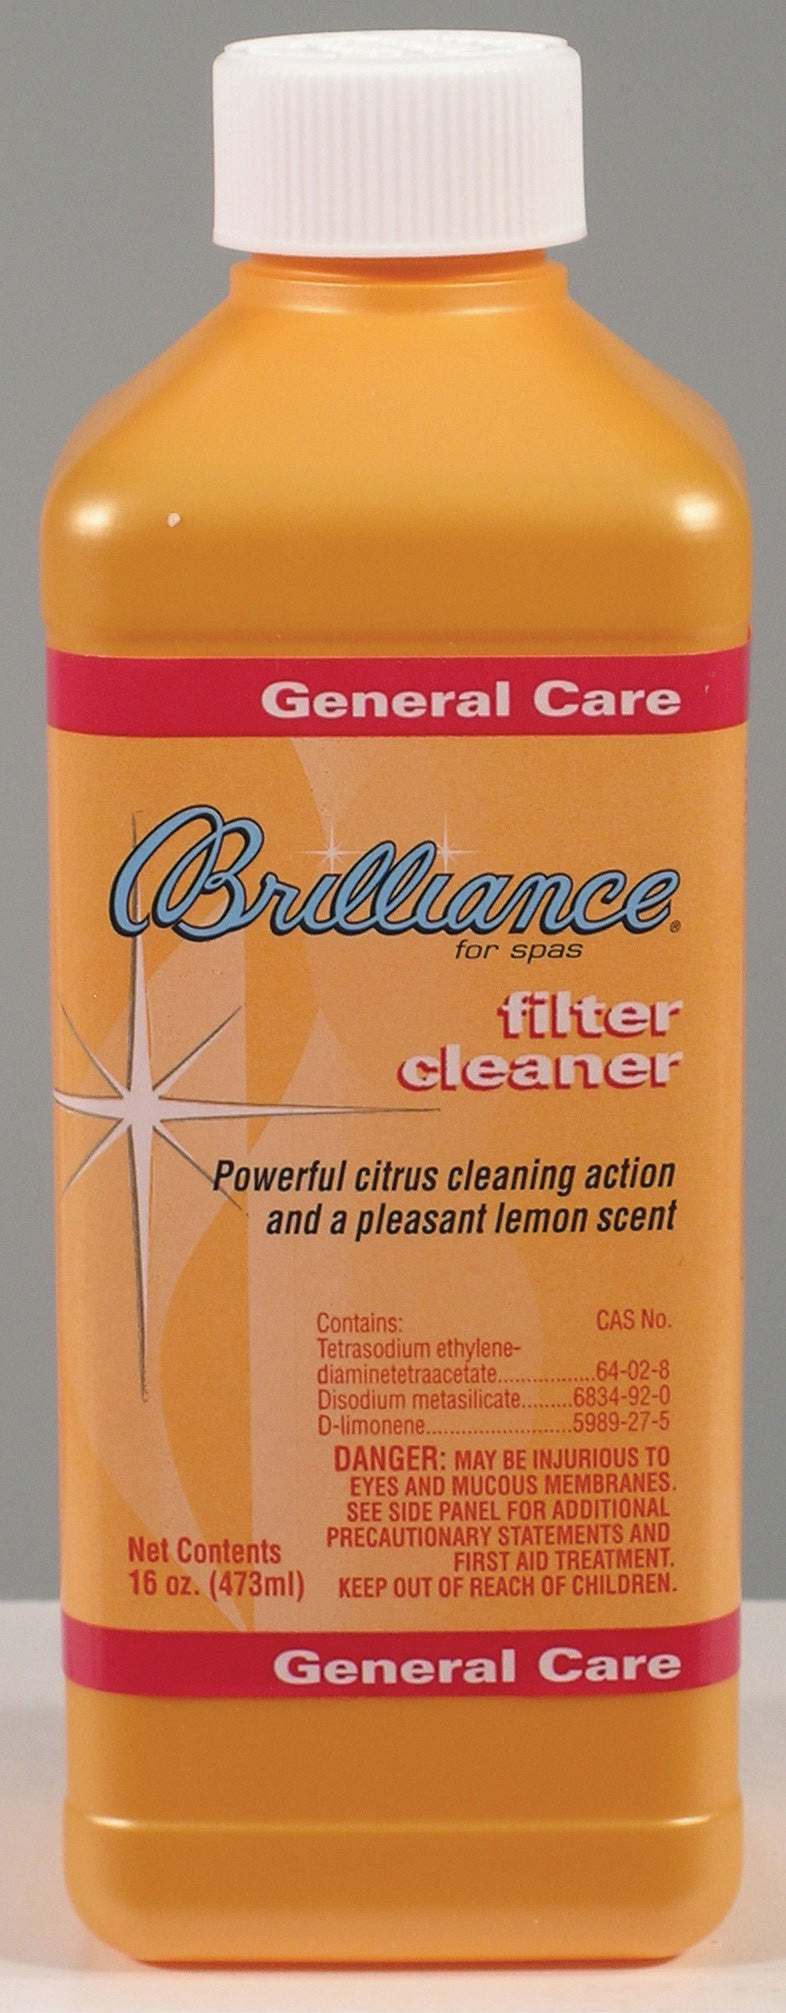 Brilliance Filter Cleaner